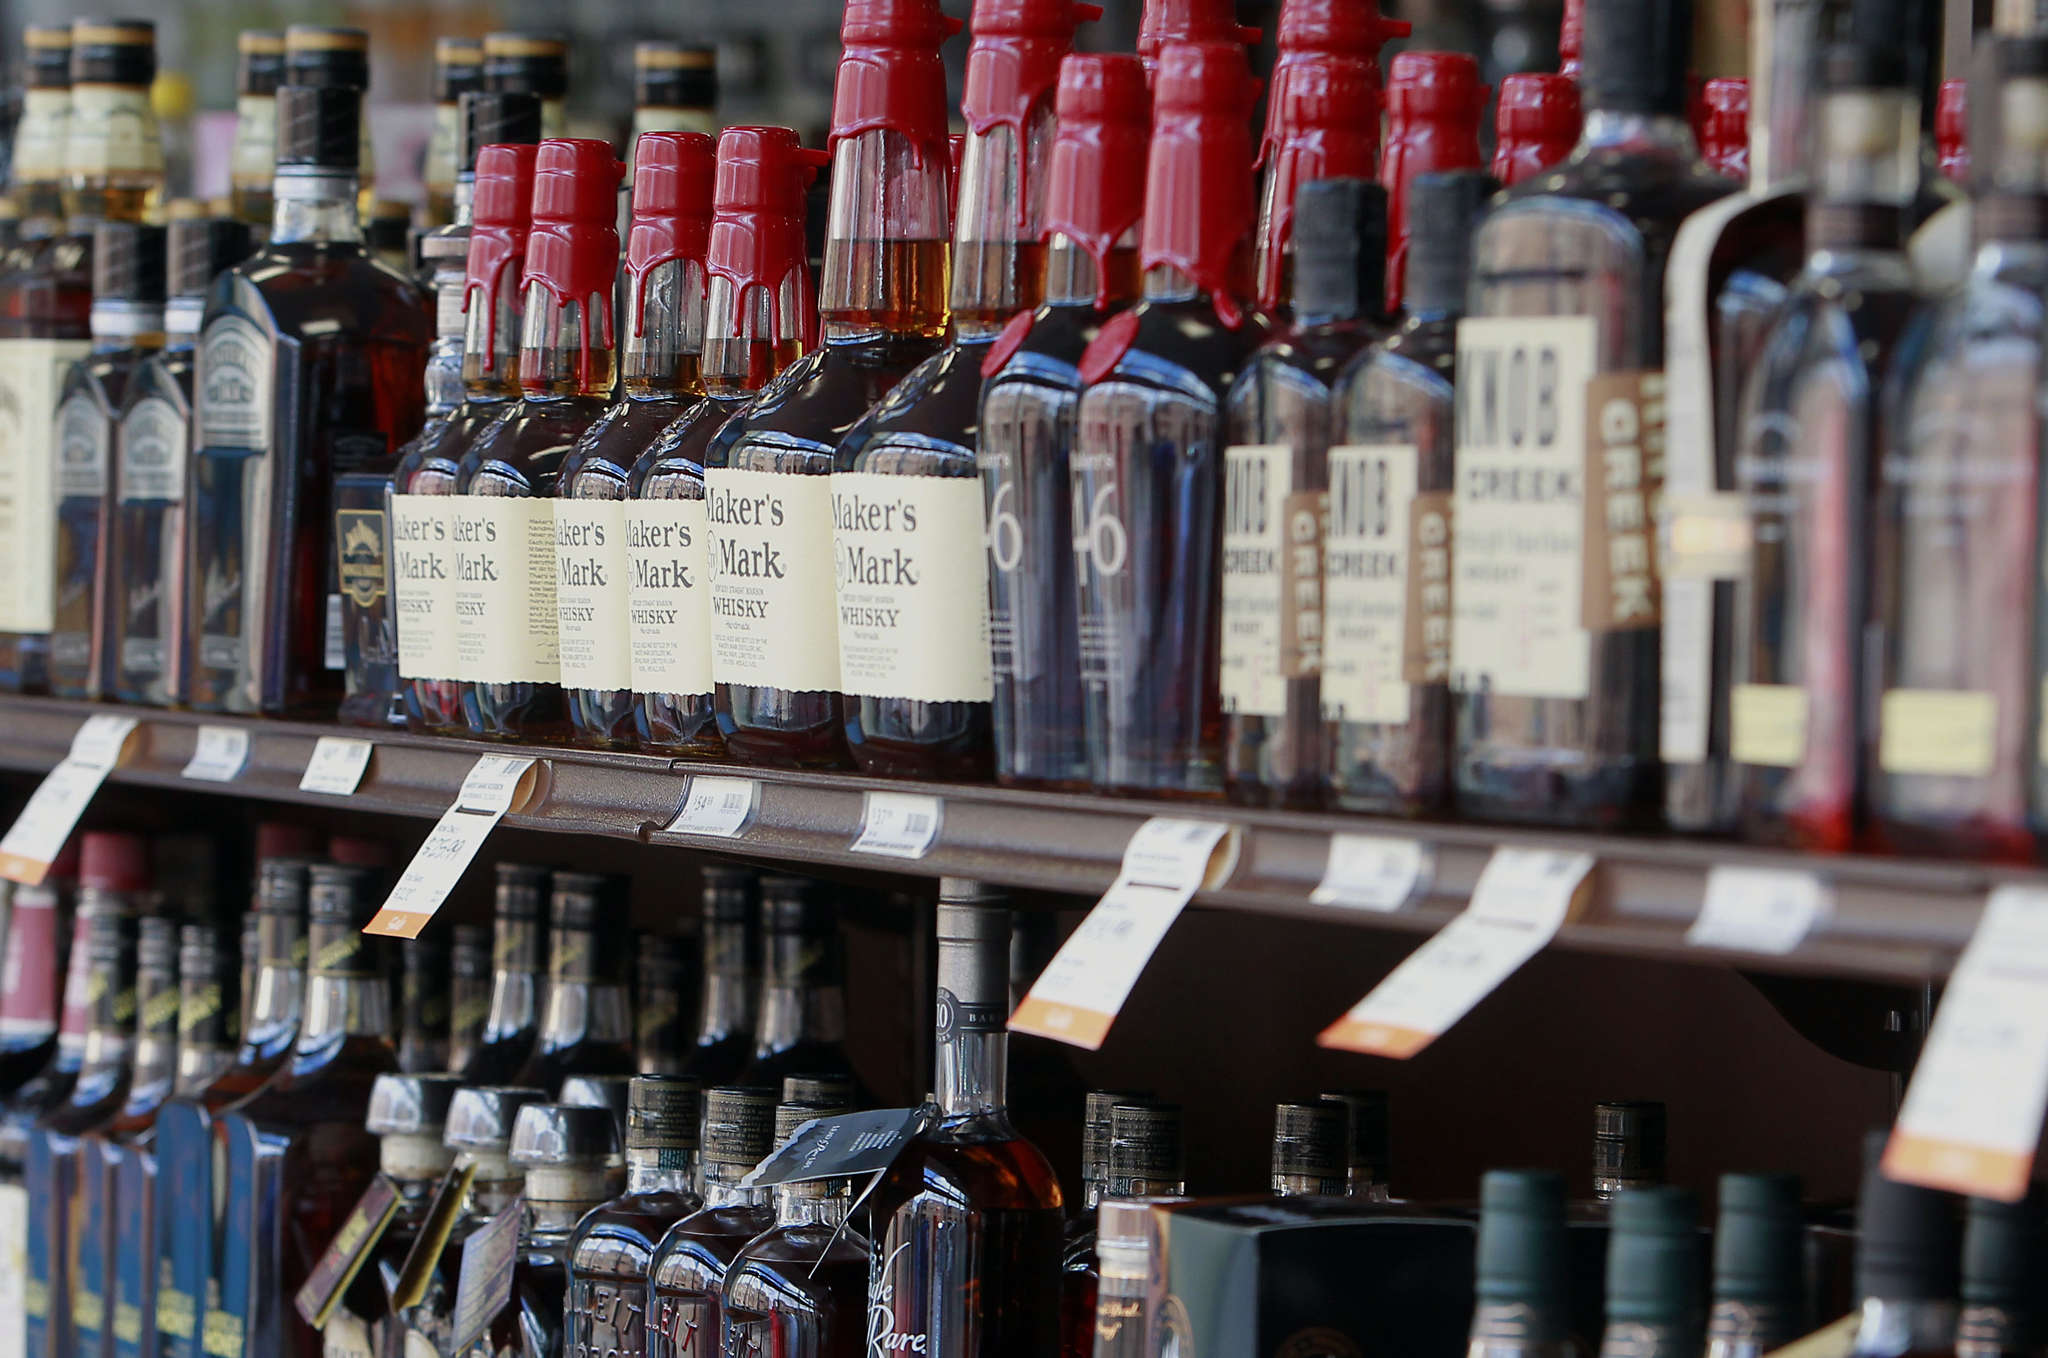 Under the new statutes, we now have Fine Wine & Good Spirits stores, with flexible hours and pricing.